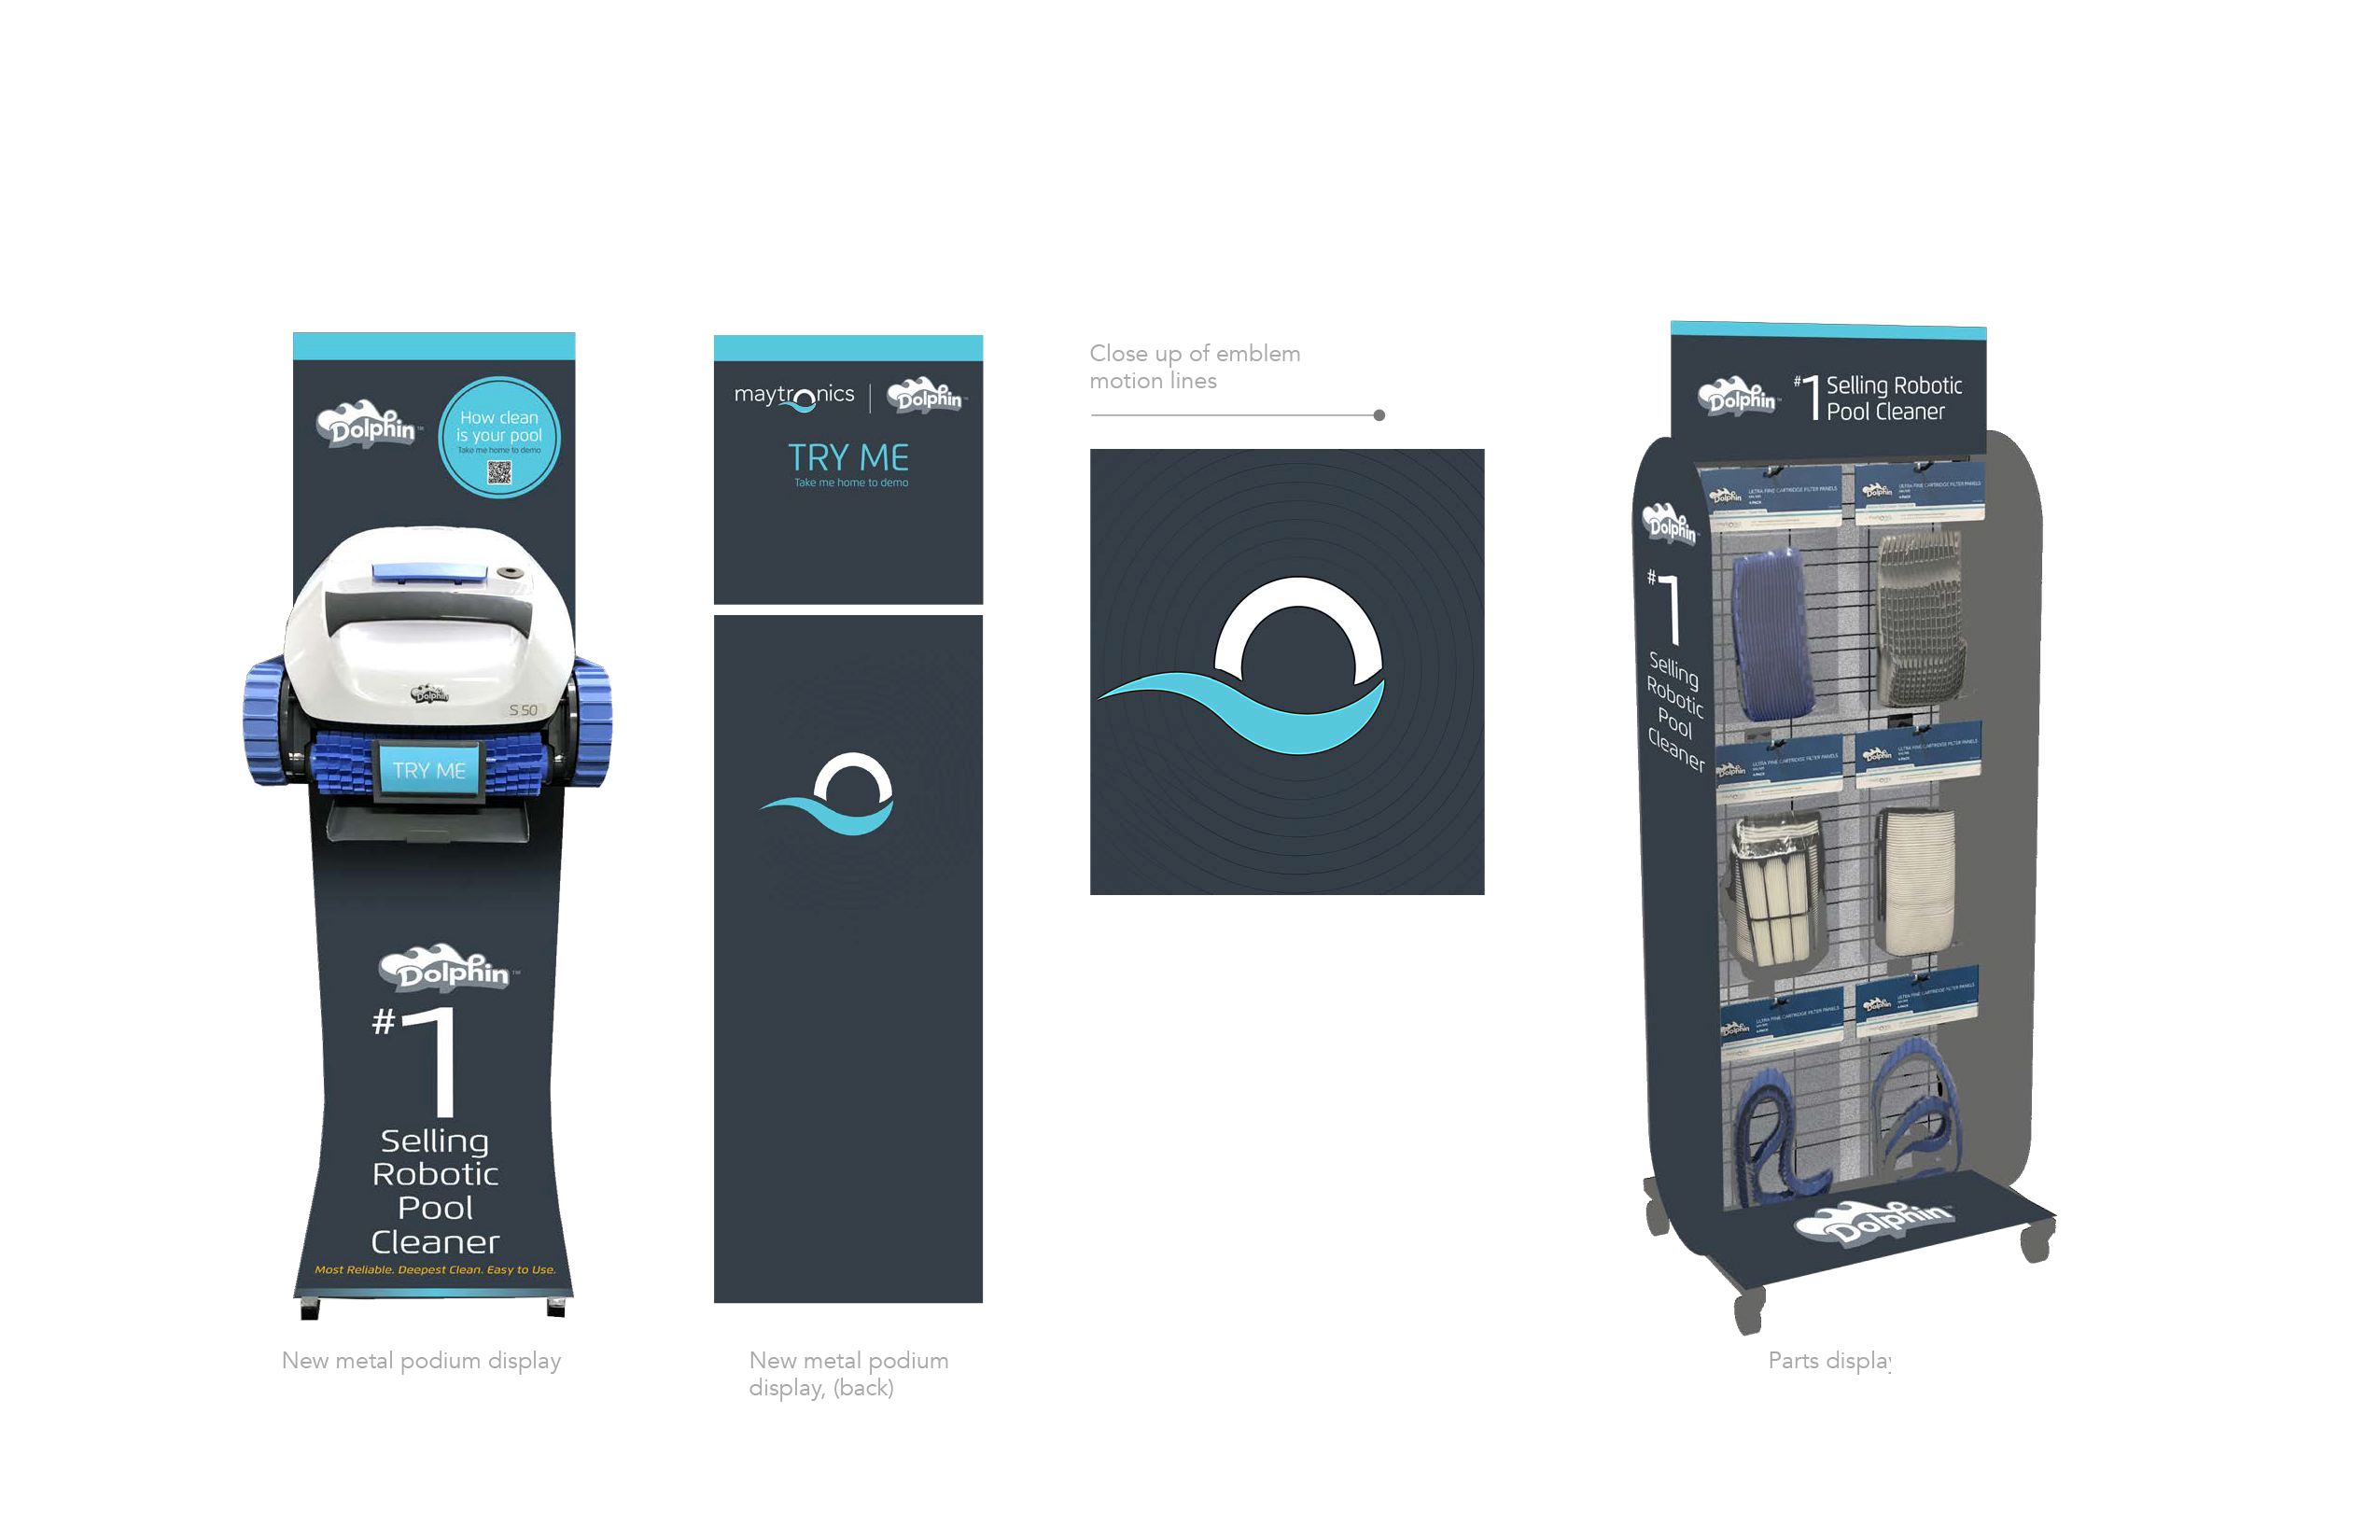 Maytronics – Dealer retail and accessory display options